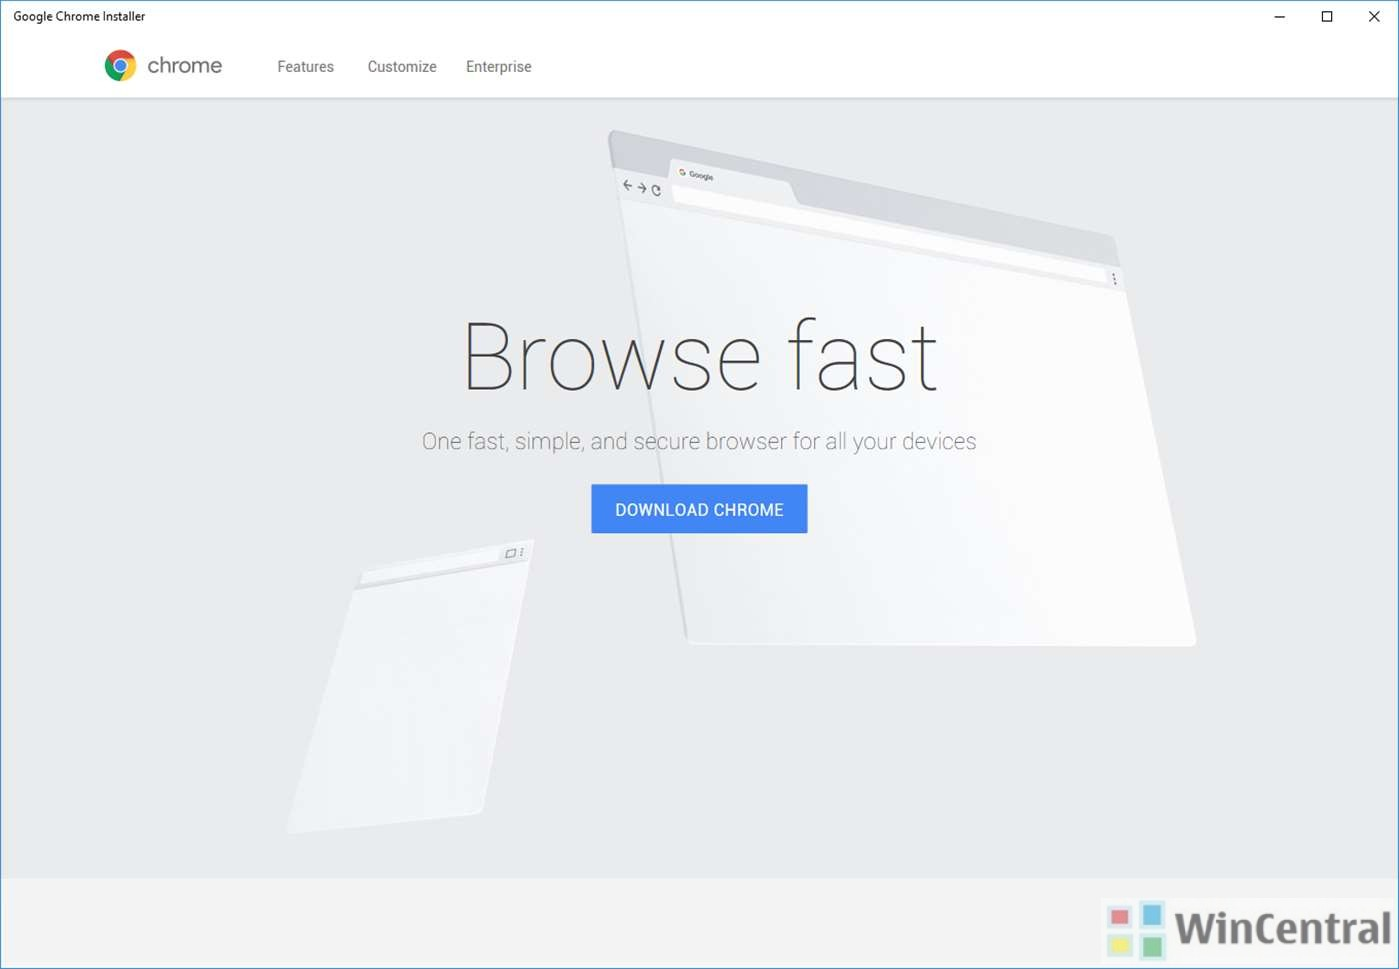 Surprise! Google Chrome is now available on the Microsoft Store, kind of